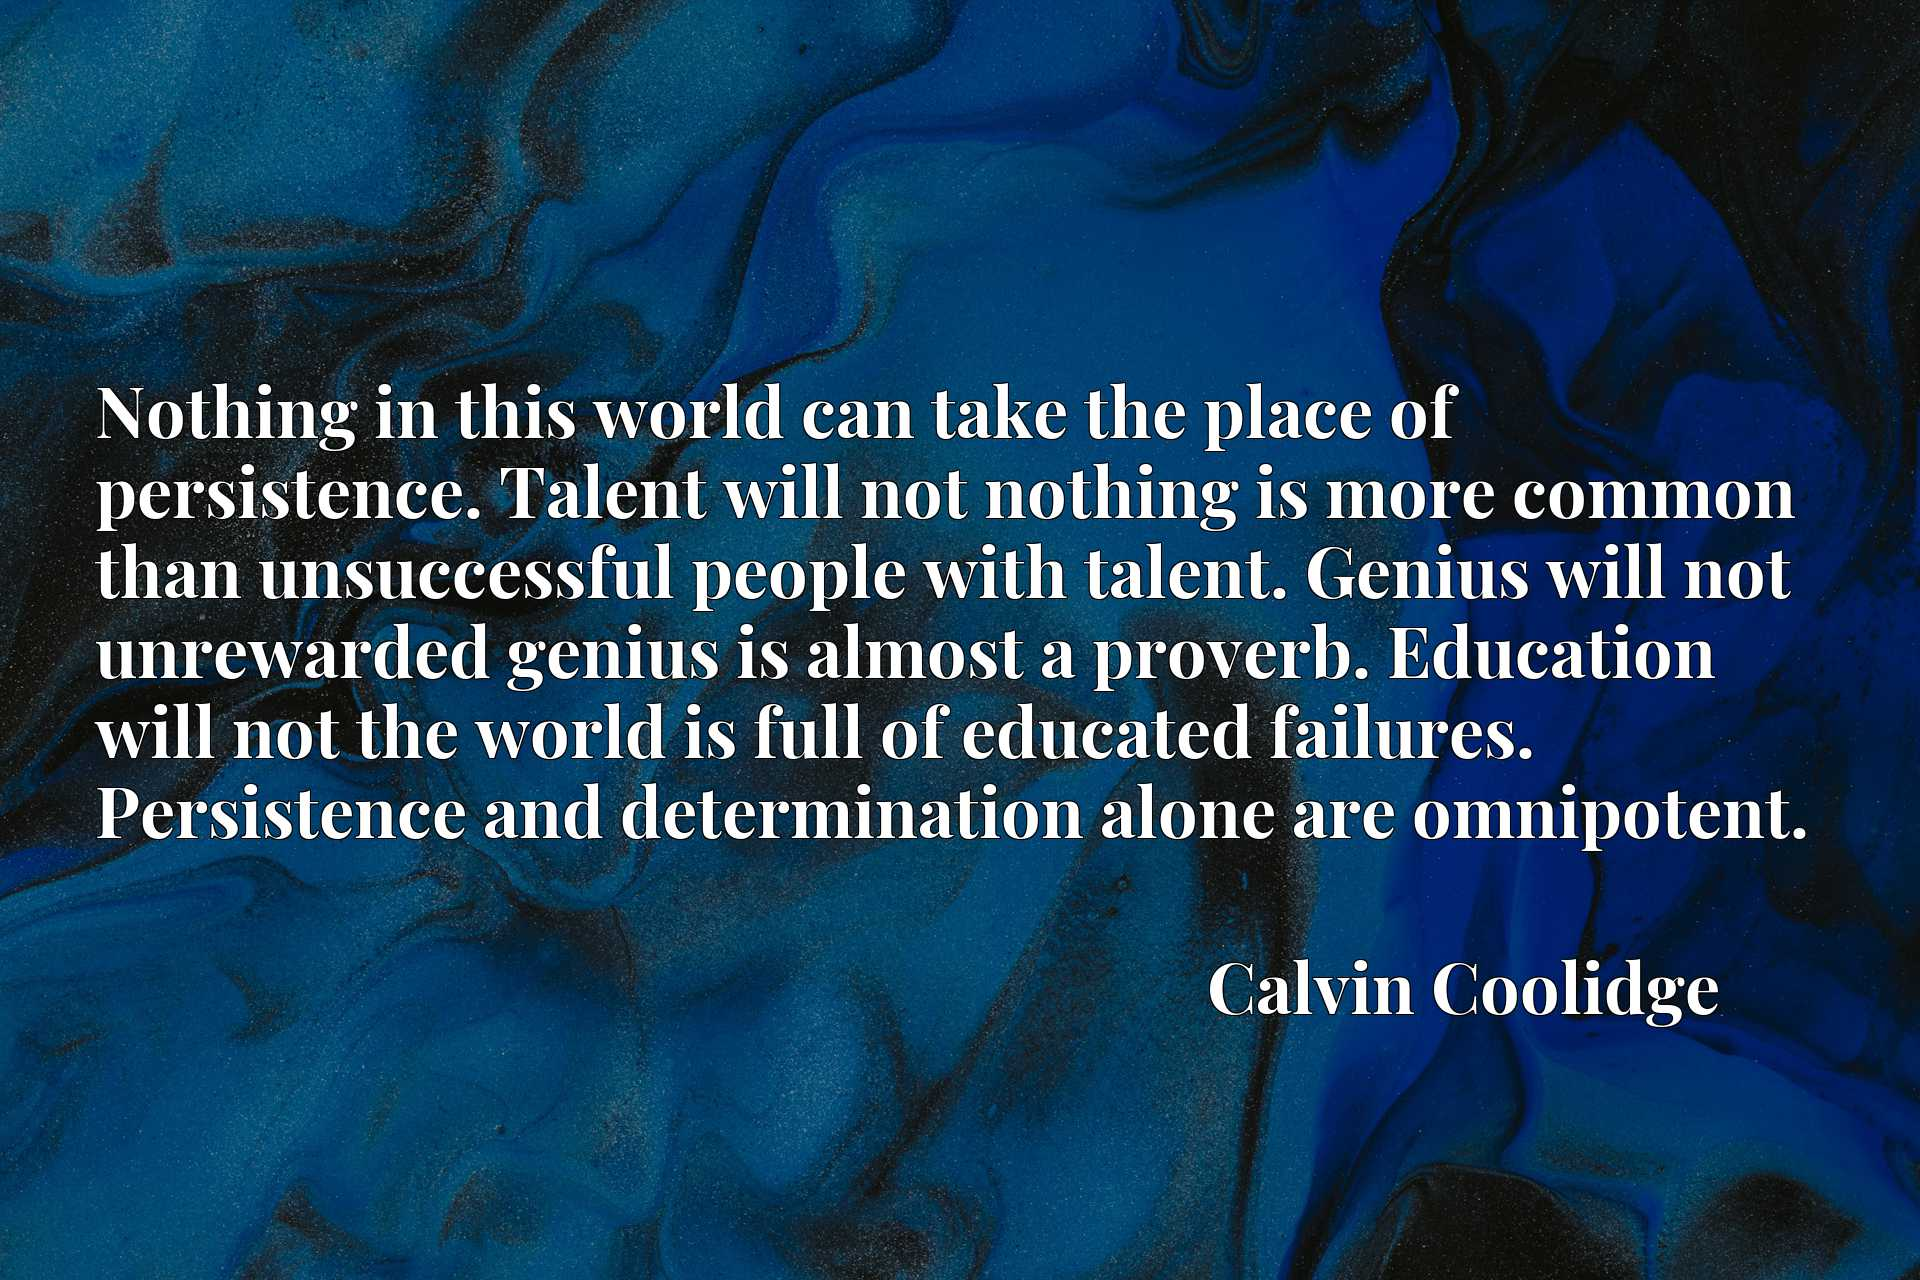 Nothing in this world can take the place of persistence. Talent will not nothing is more common than unsuccessful people with talent. Genius will not unrewarded genius is almost a proverb. Education will not the world is full of educated failures. Persistence and determination alone are omnipotent.